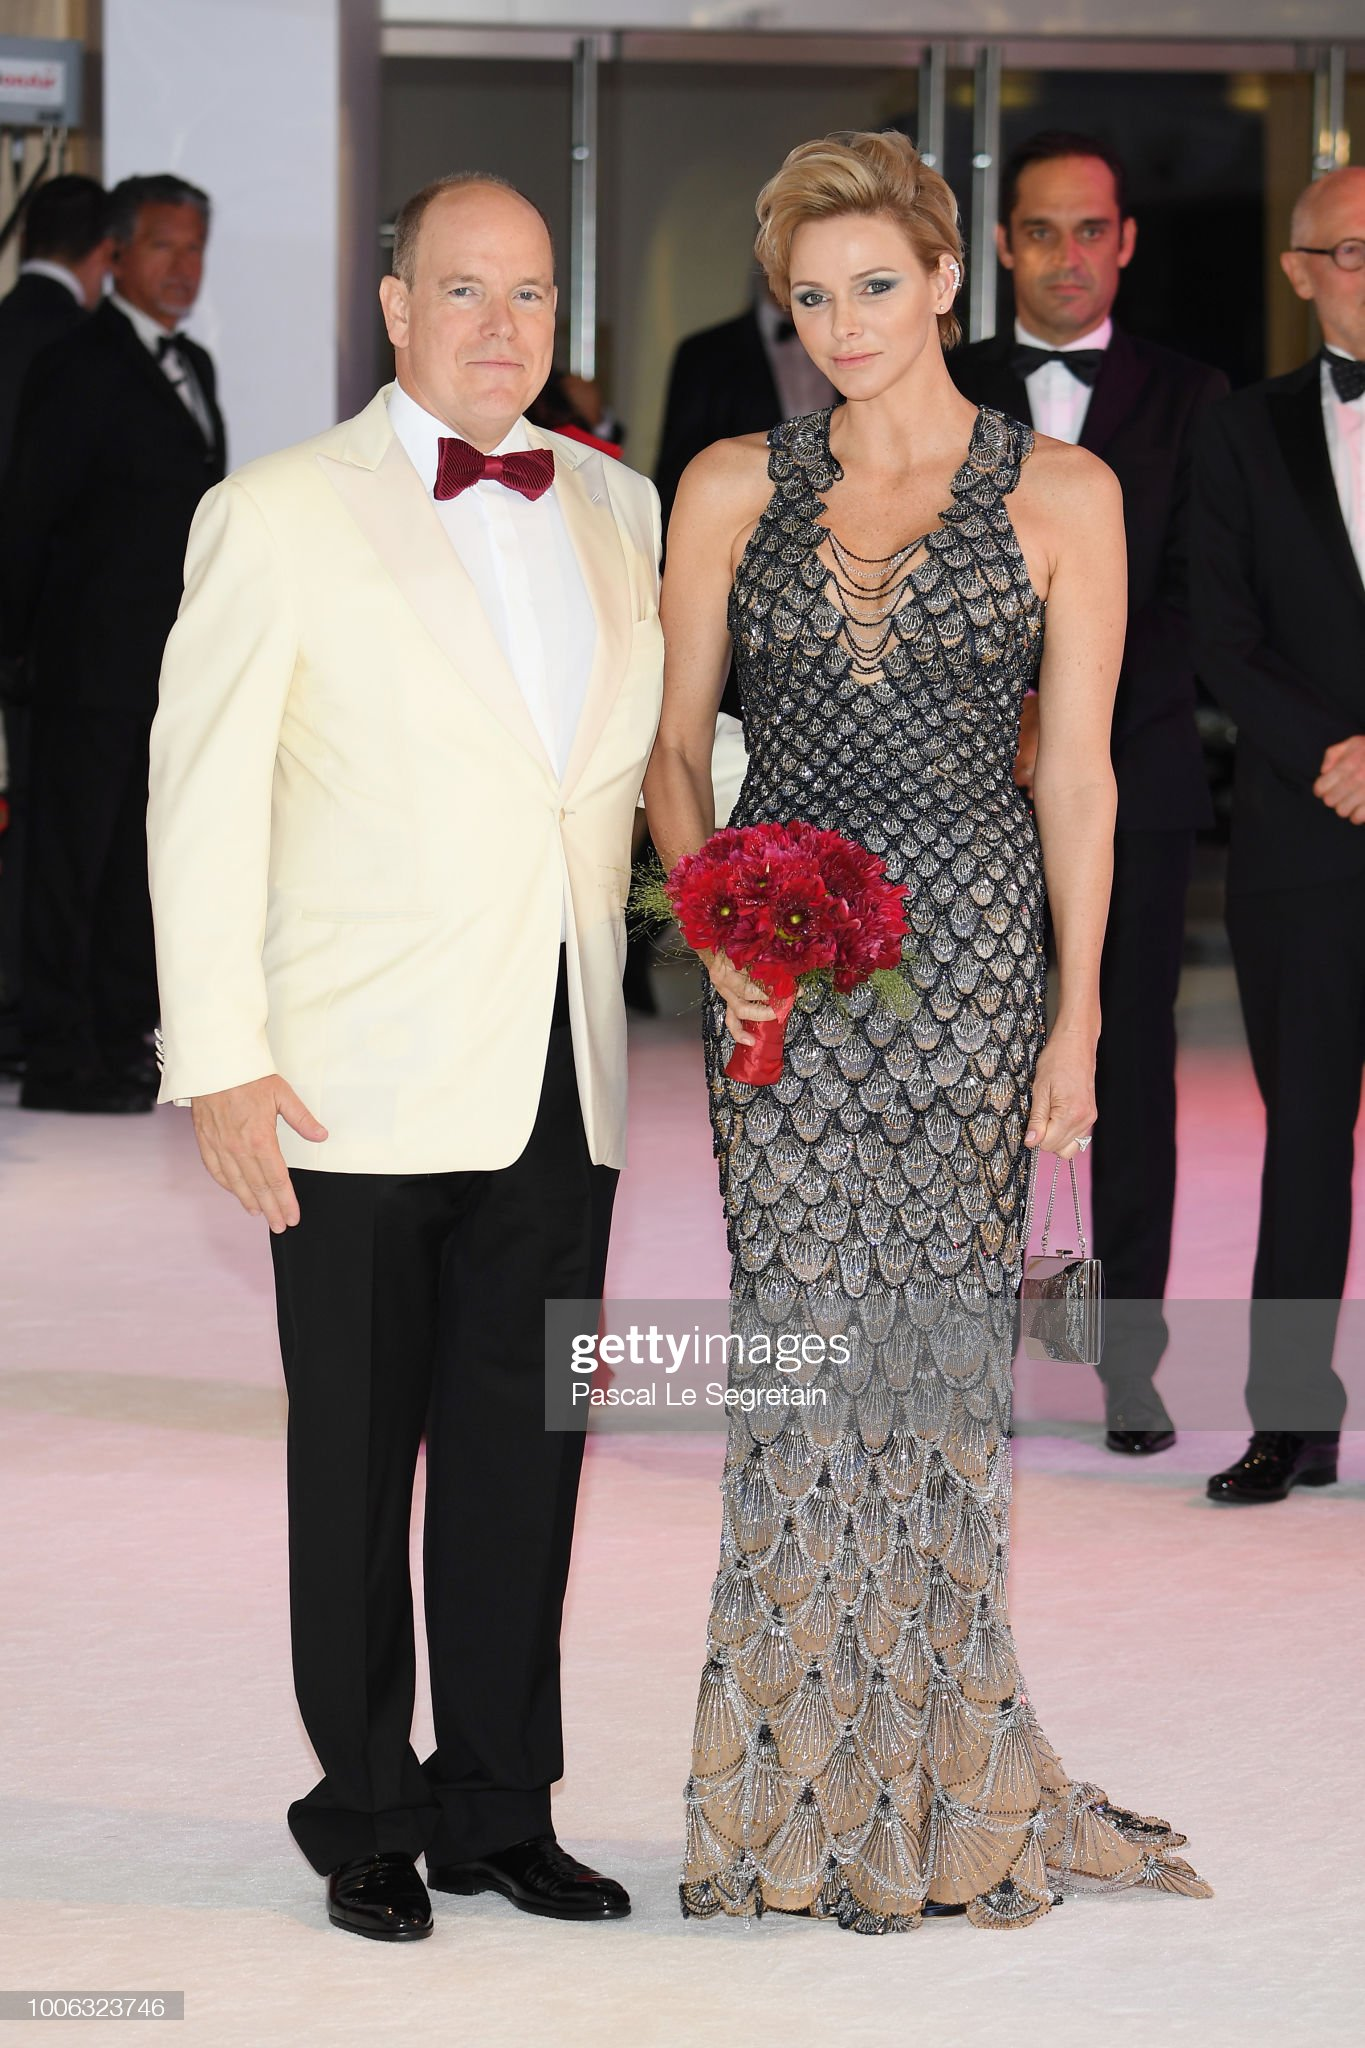 70th Monaco Red Cross Ball Gala In Monaco : News Photo